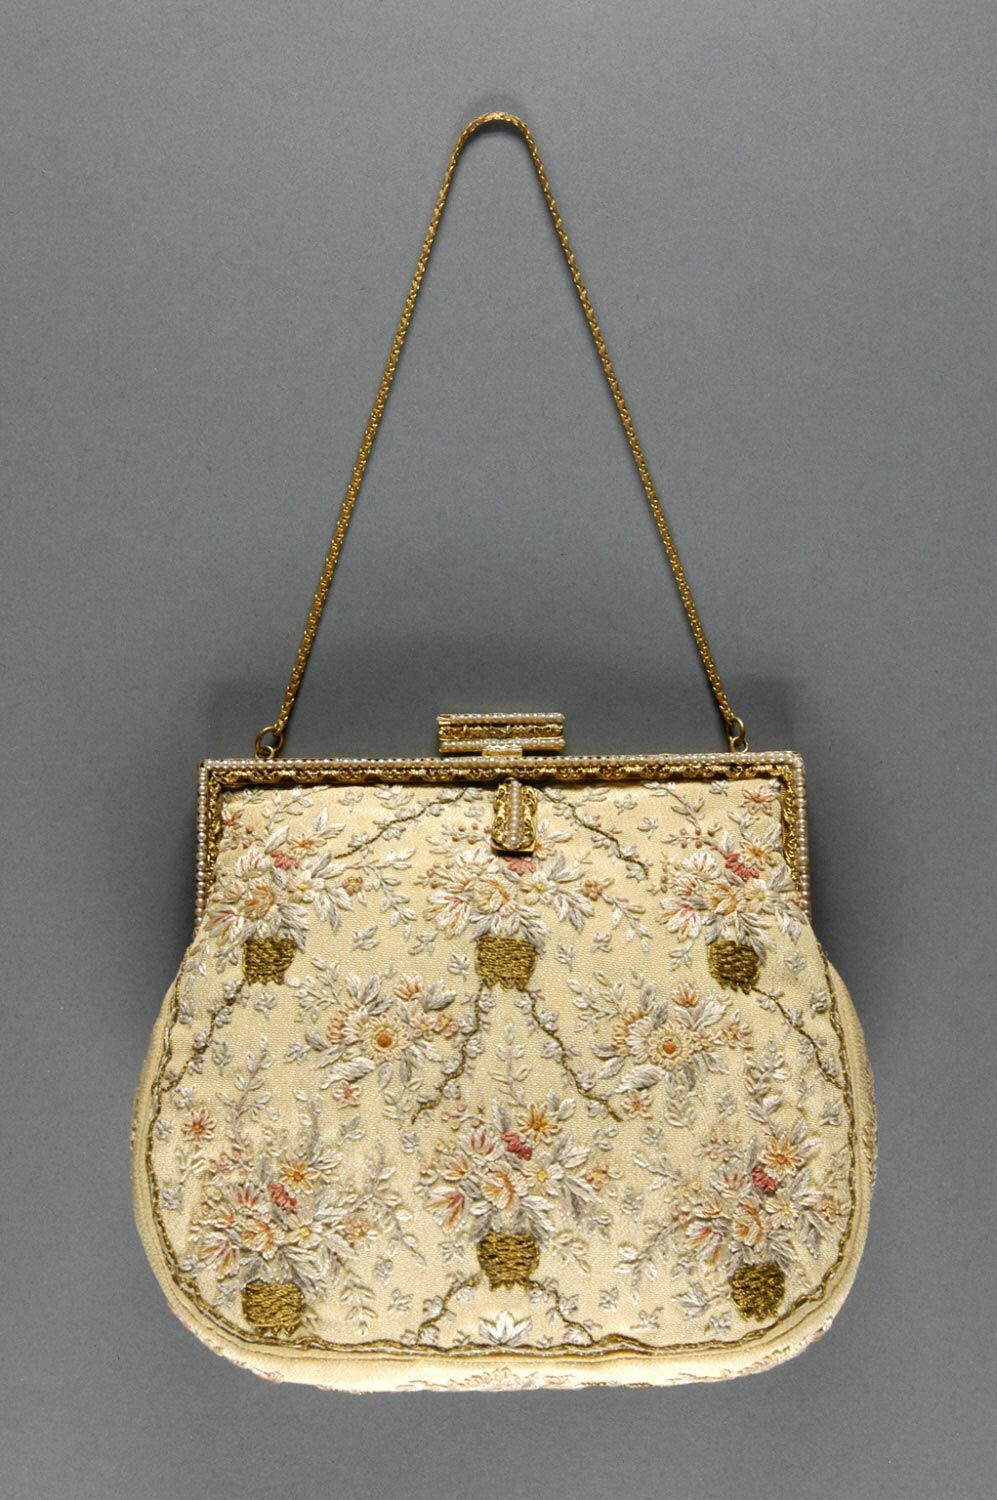 1920, Austria, Vienna - Bag - Silk with embroidery and pearls, gilt ...